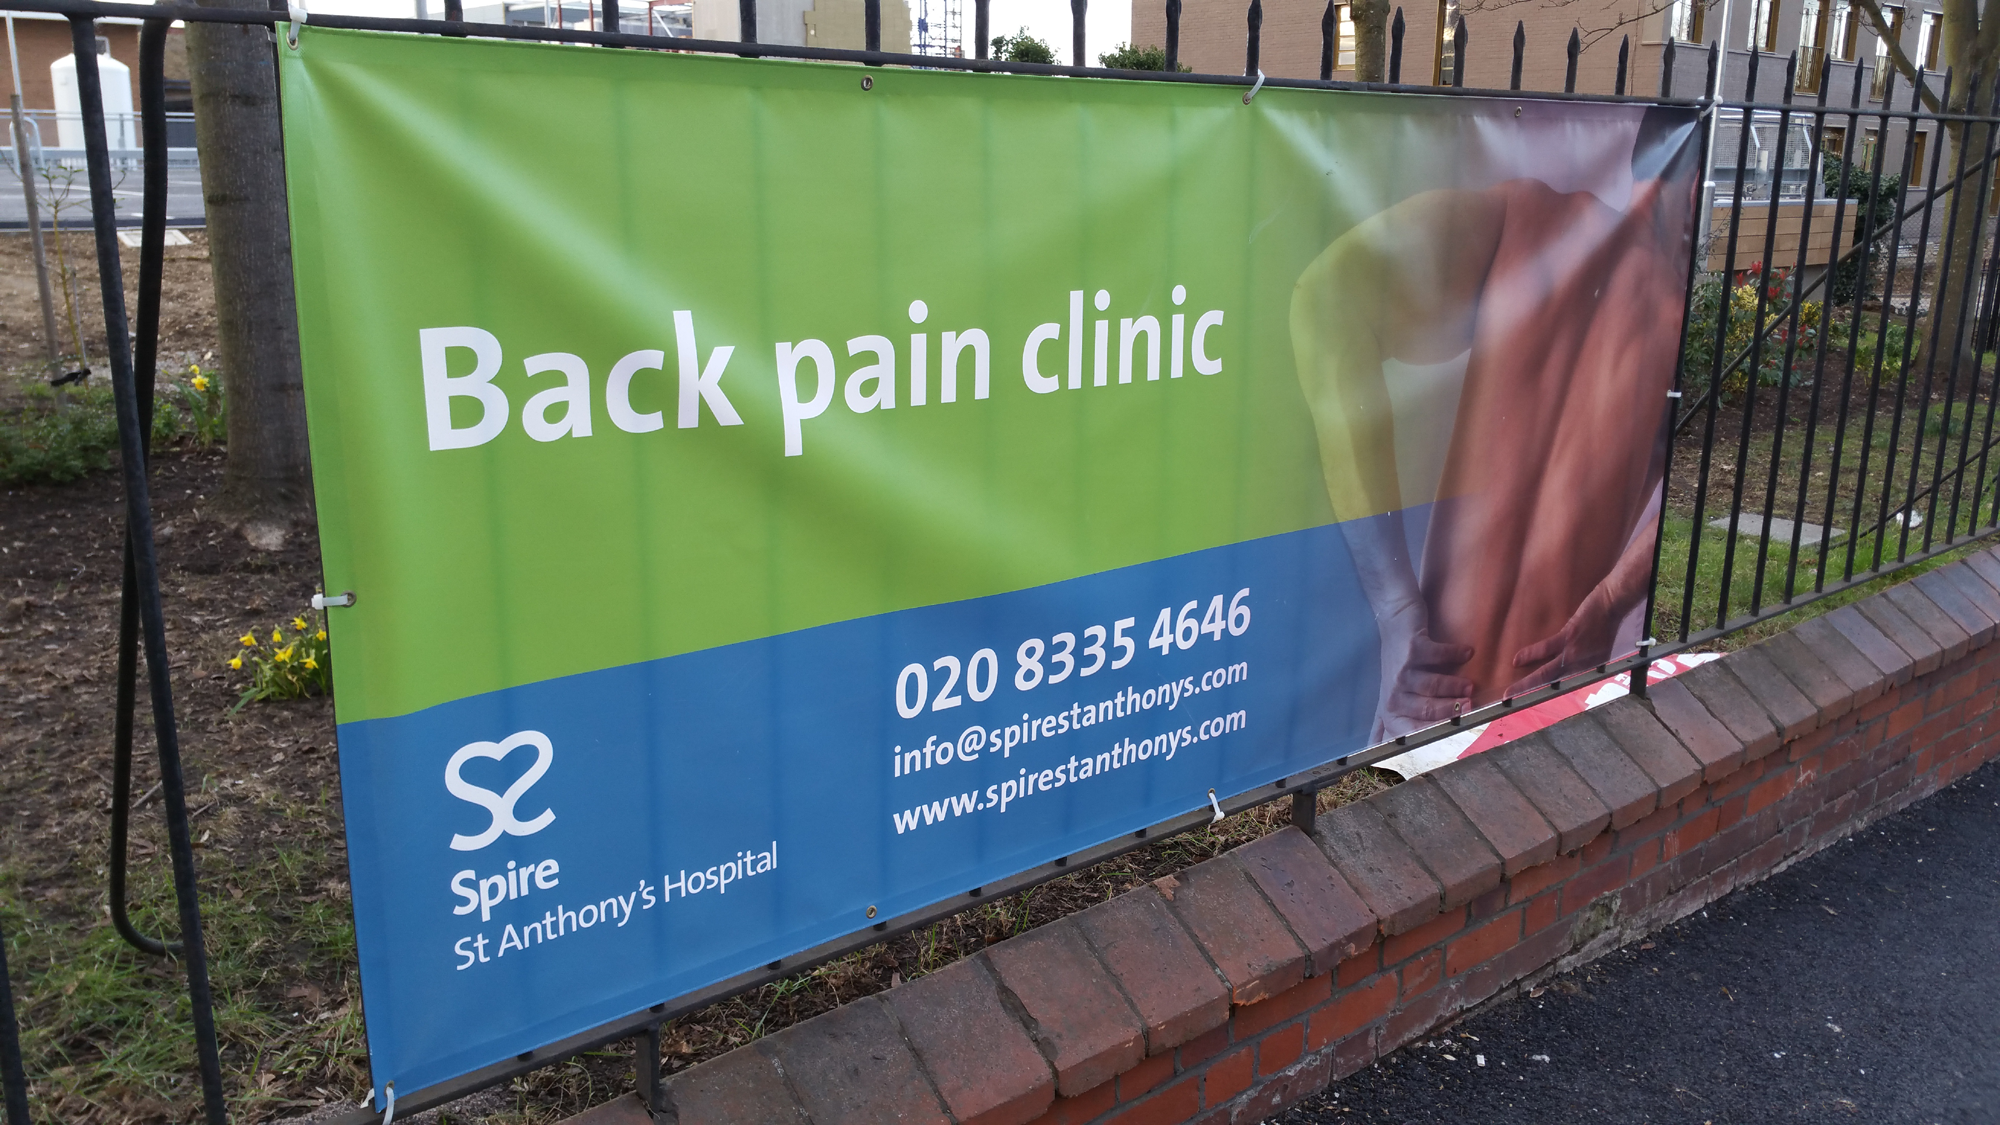 Spire St Anthony's Hospital - Back pain clinic